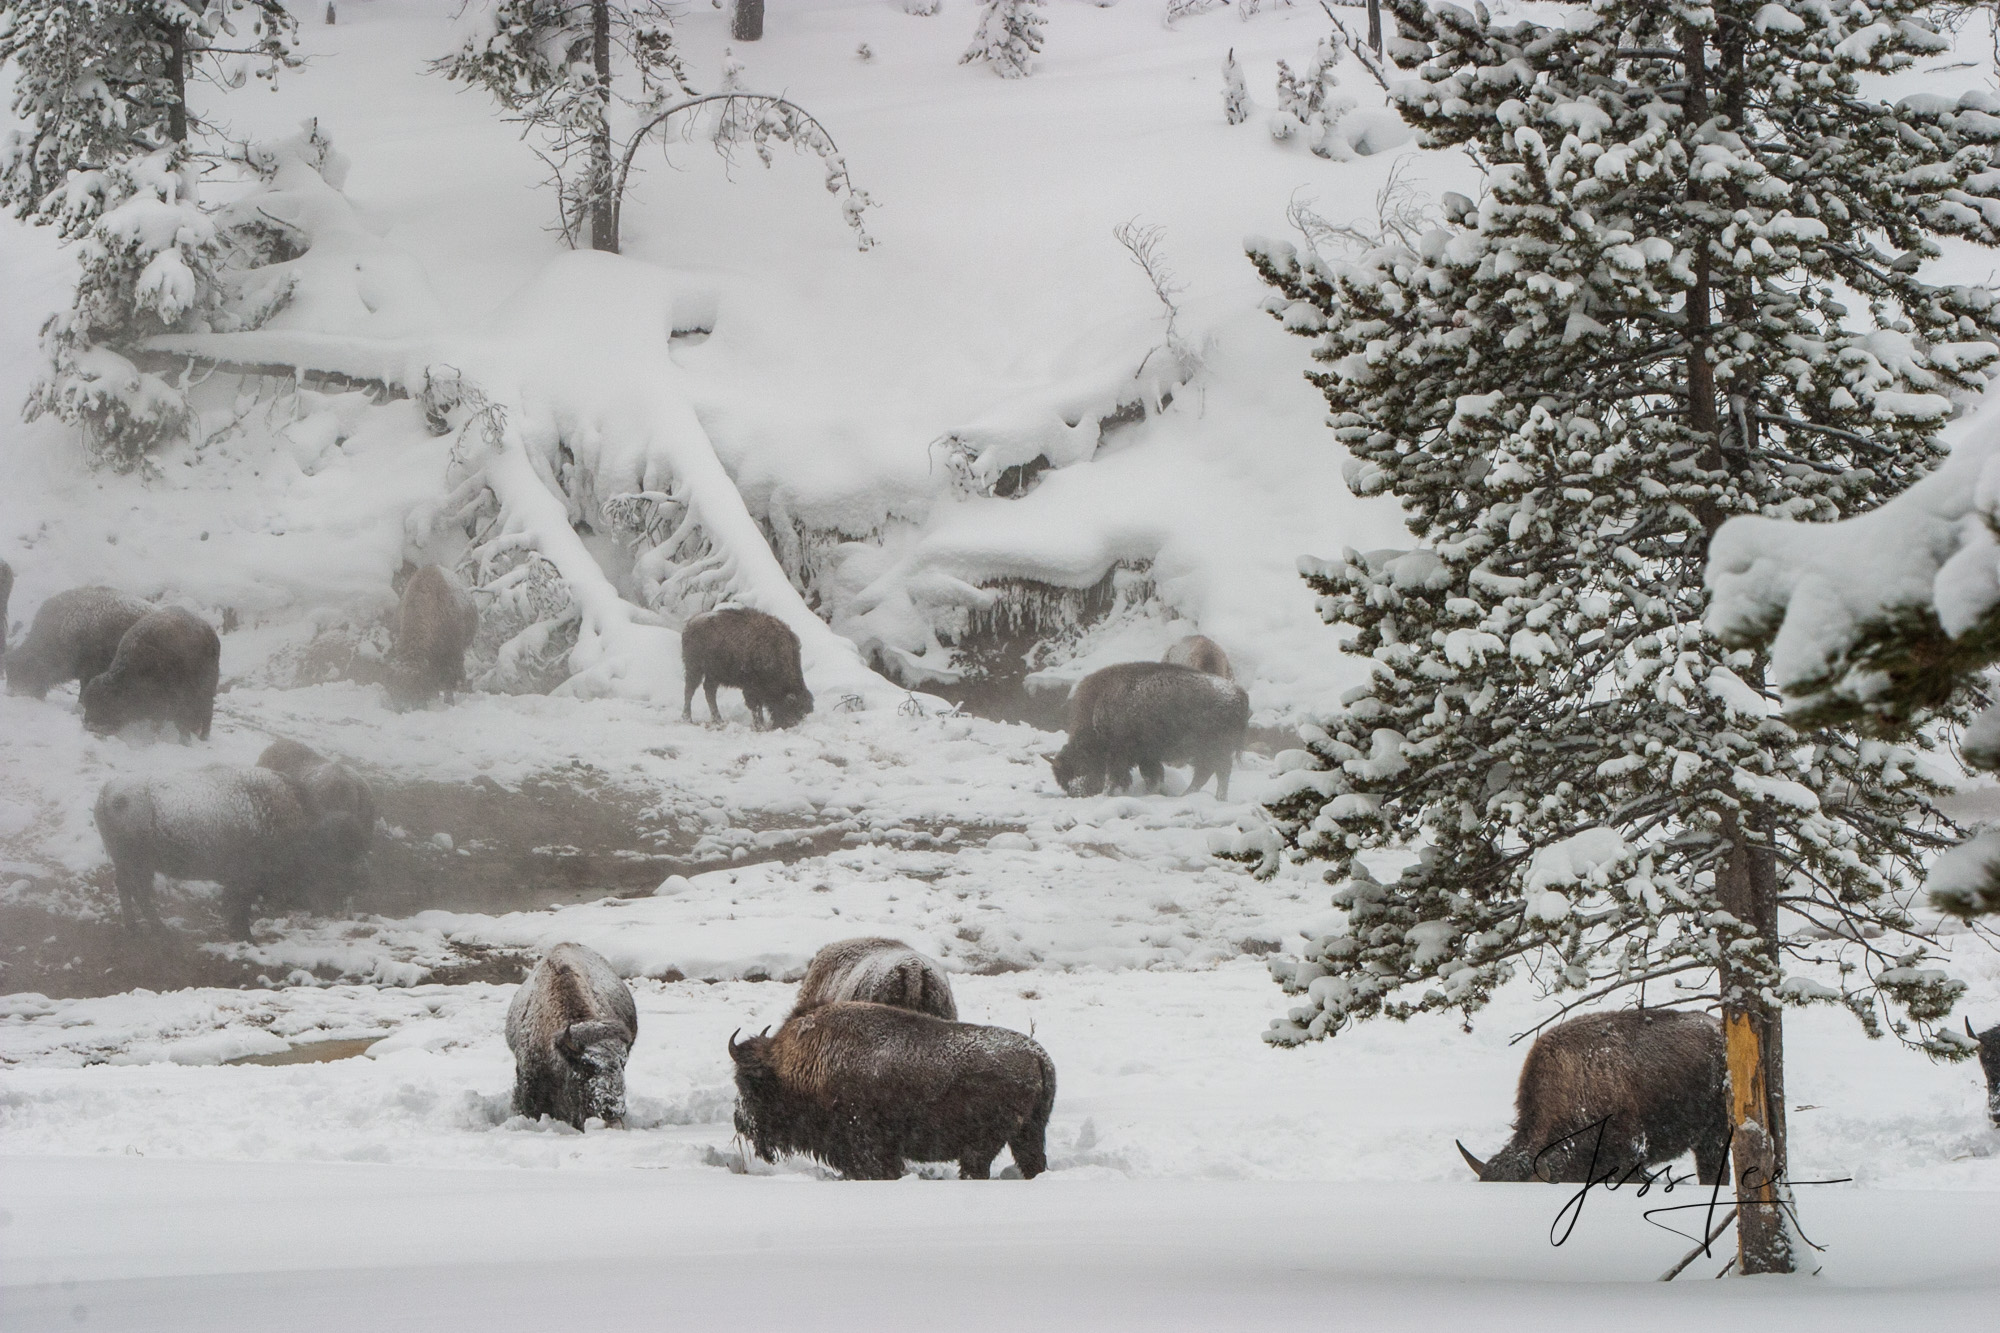 Yellowstone Bison or American Buffalo.. A Limited Edition of 800 Prints. These hot spring Bison fine art wildlife photographs...